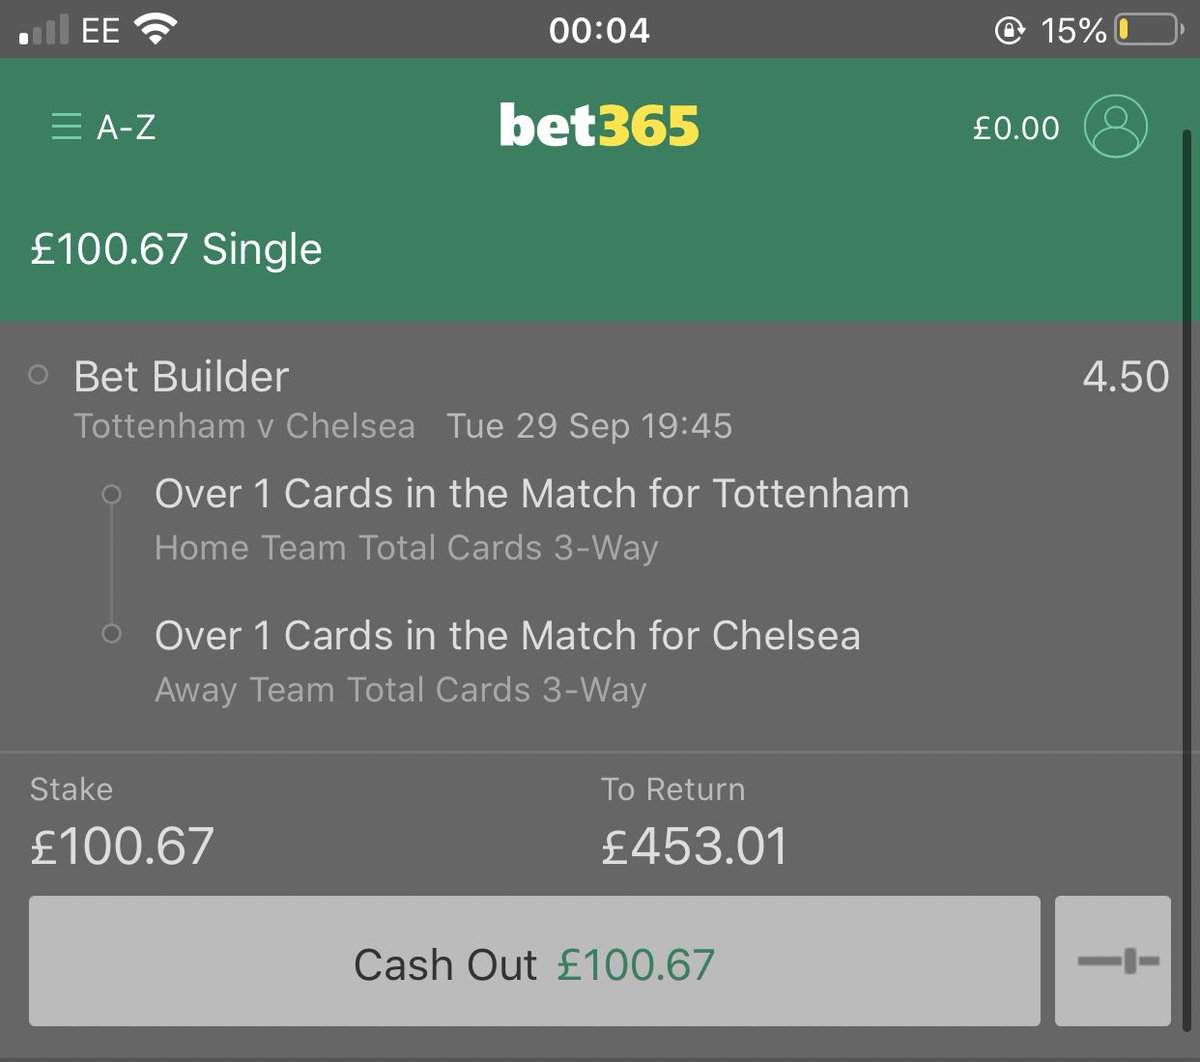 Found today's bet, Great odds higher than William hill🤪 #betting #bettingtips #inplay #football #EFLCup #TOTCHE #FreeMoney #retweets https://t.co/hUd5DCylbg